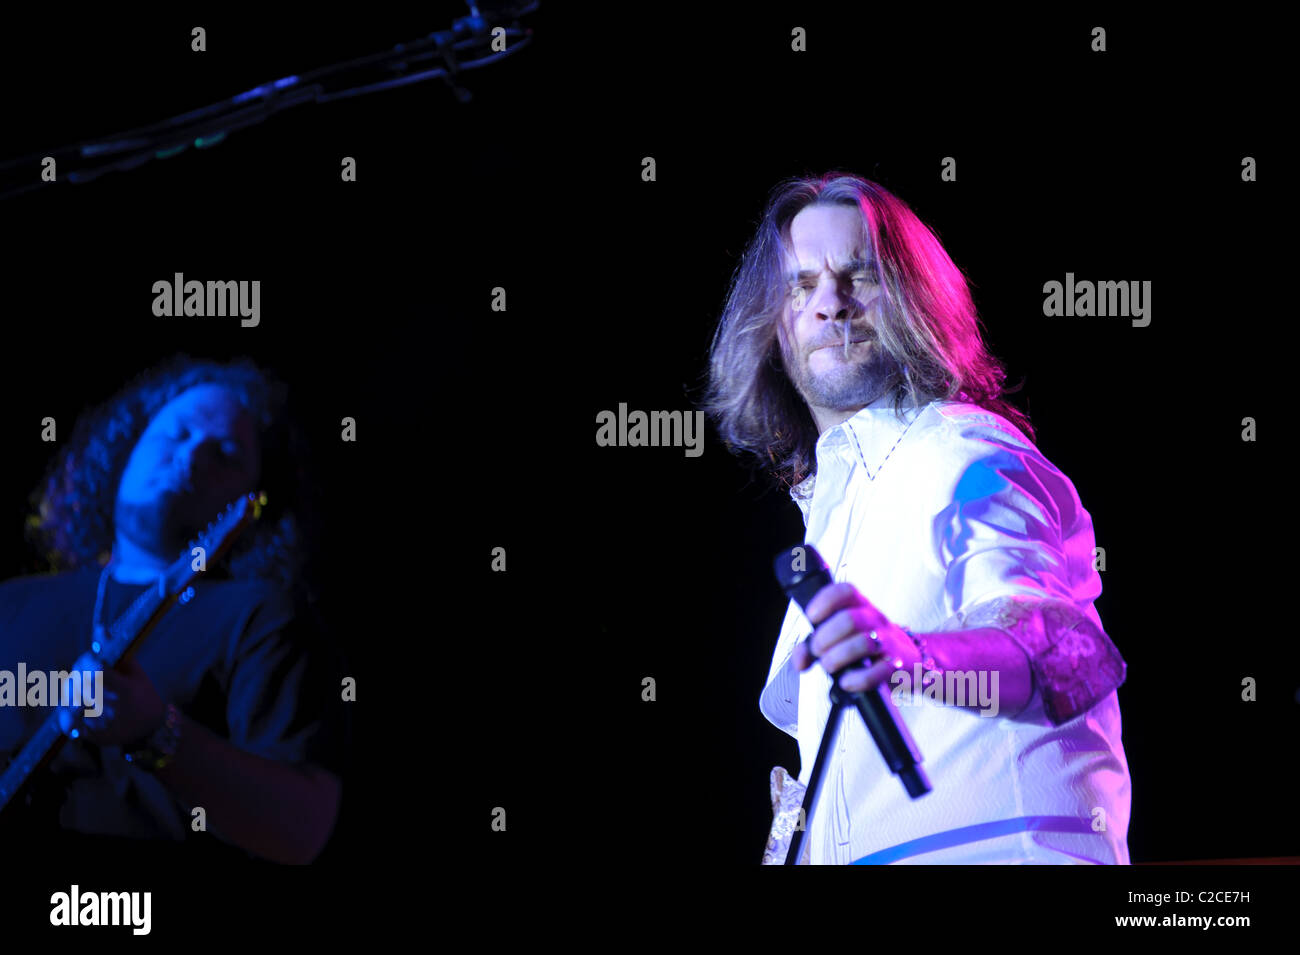 April 08, 2011, Sacramento, CA - Bo Bice performs on stage at Thunder Valley Casino in Rocklin, CA - Stock Image